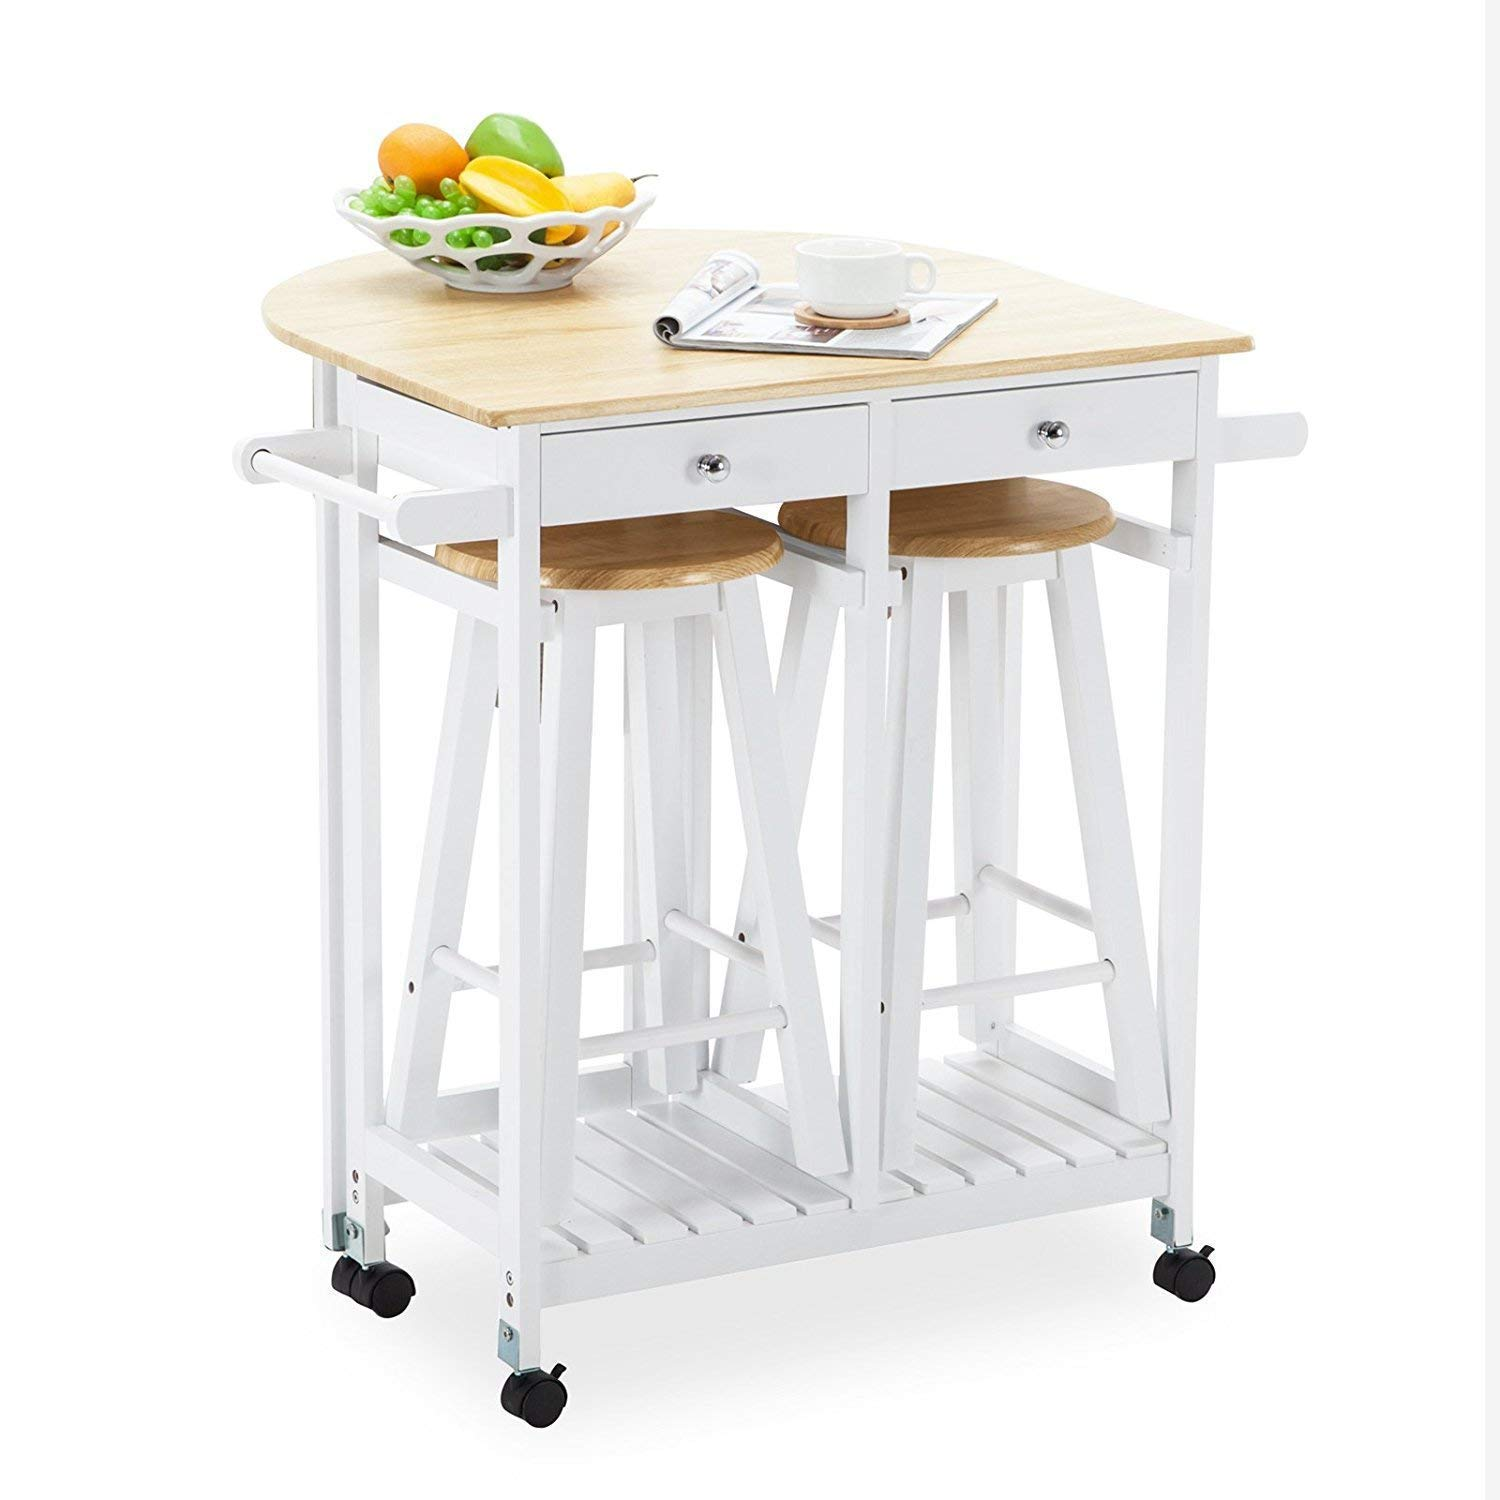 Mecor Drop Leaf Cart, 3PCS Wood Kitchen Rolling Casters with 2 Stools and 2 Drawers White